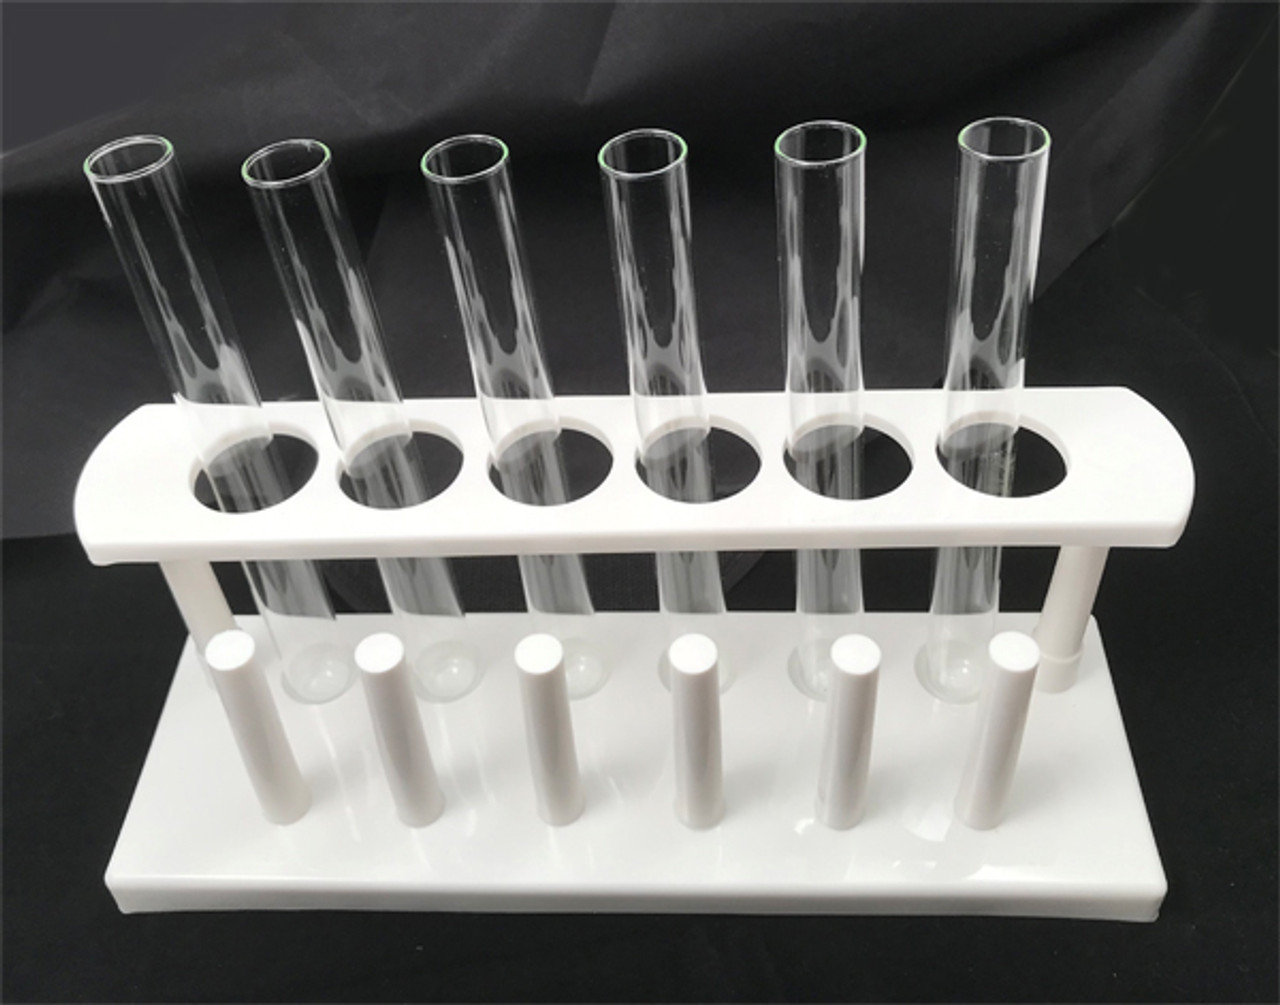 Test tube rack shown with 6 test tubes.